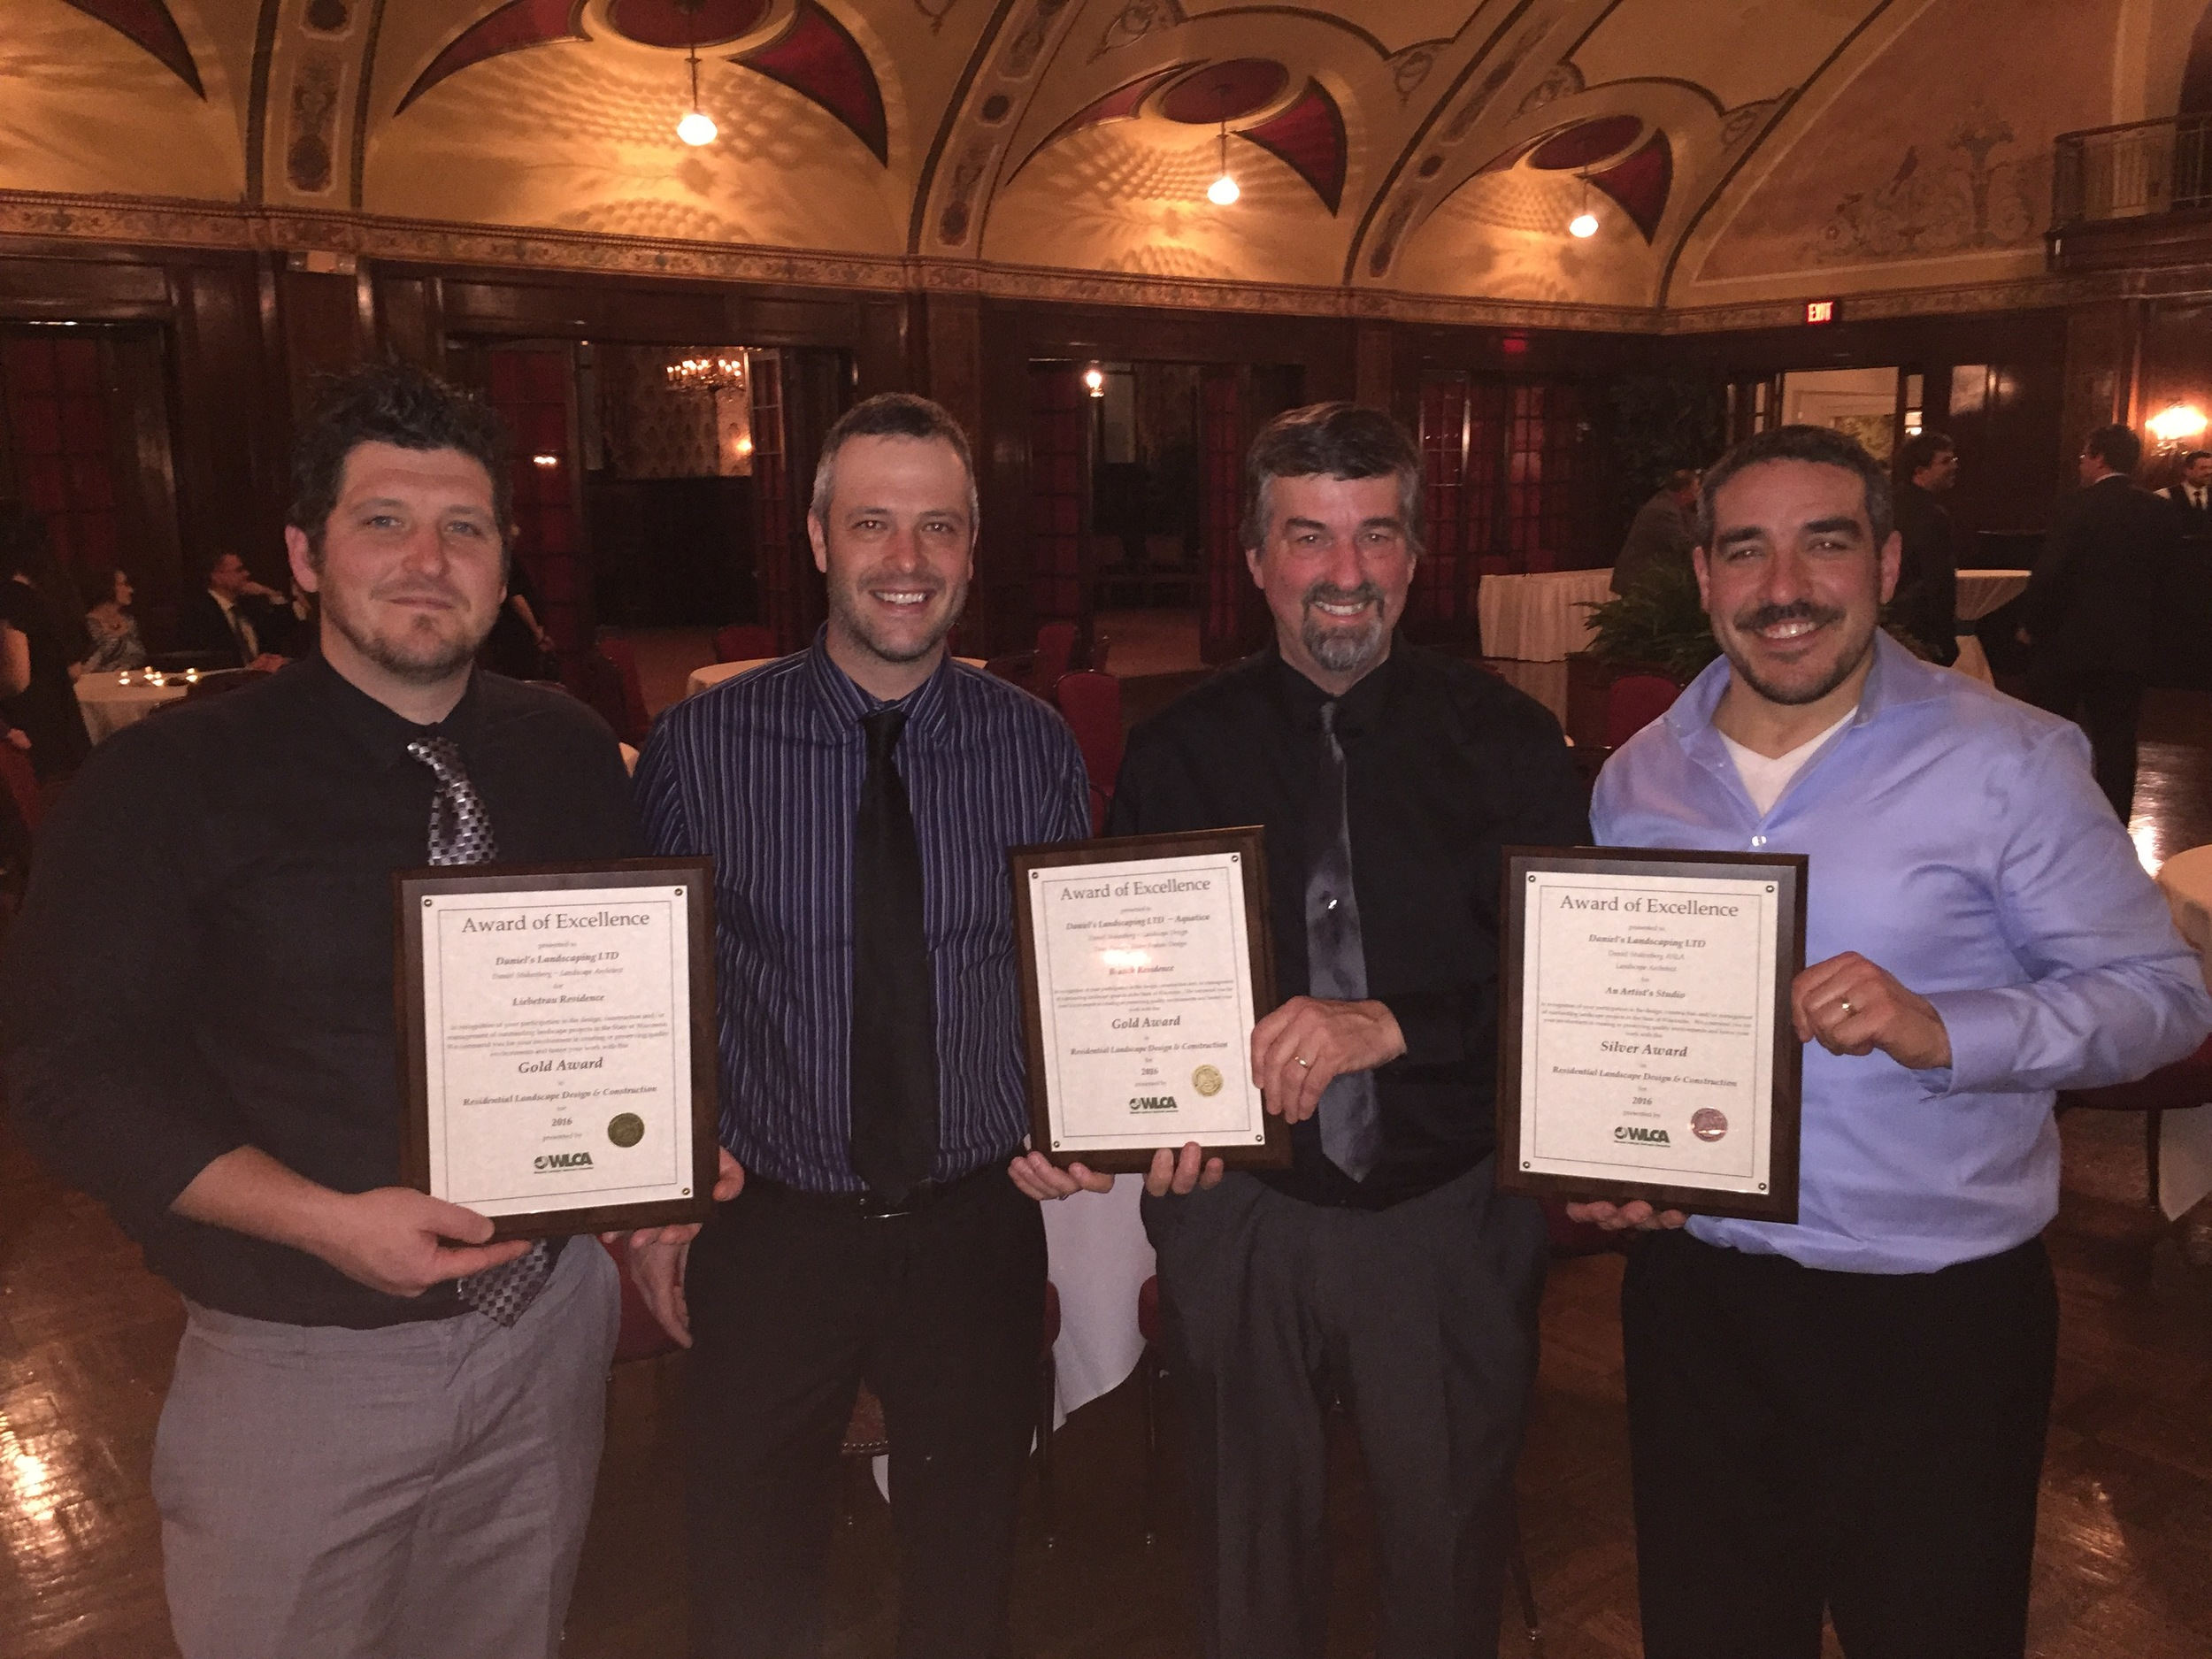 Daniel's Landscaping was honored at the WLCA Excellence in Landscaping Awards Banquet at the Wisconsin Club.  Pictured from left to right: Jared Stuht, Matt Stuht, Dan Stukenberg and Ciano DeLeon